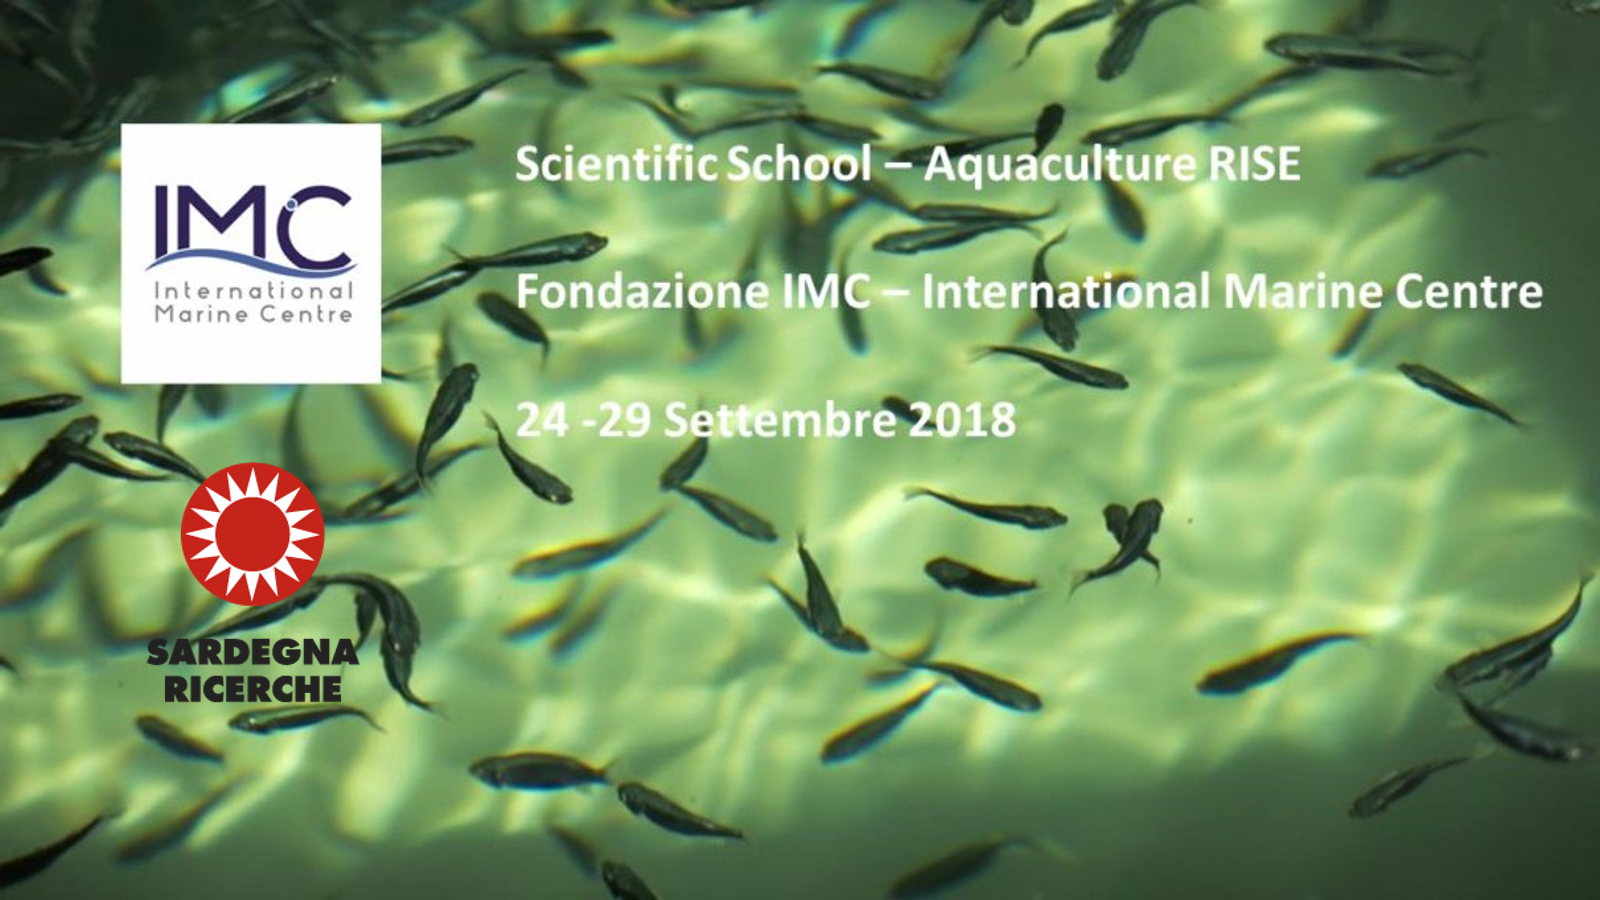 Apre a Torregrande la Scientific School Aquaculture RISE